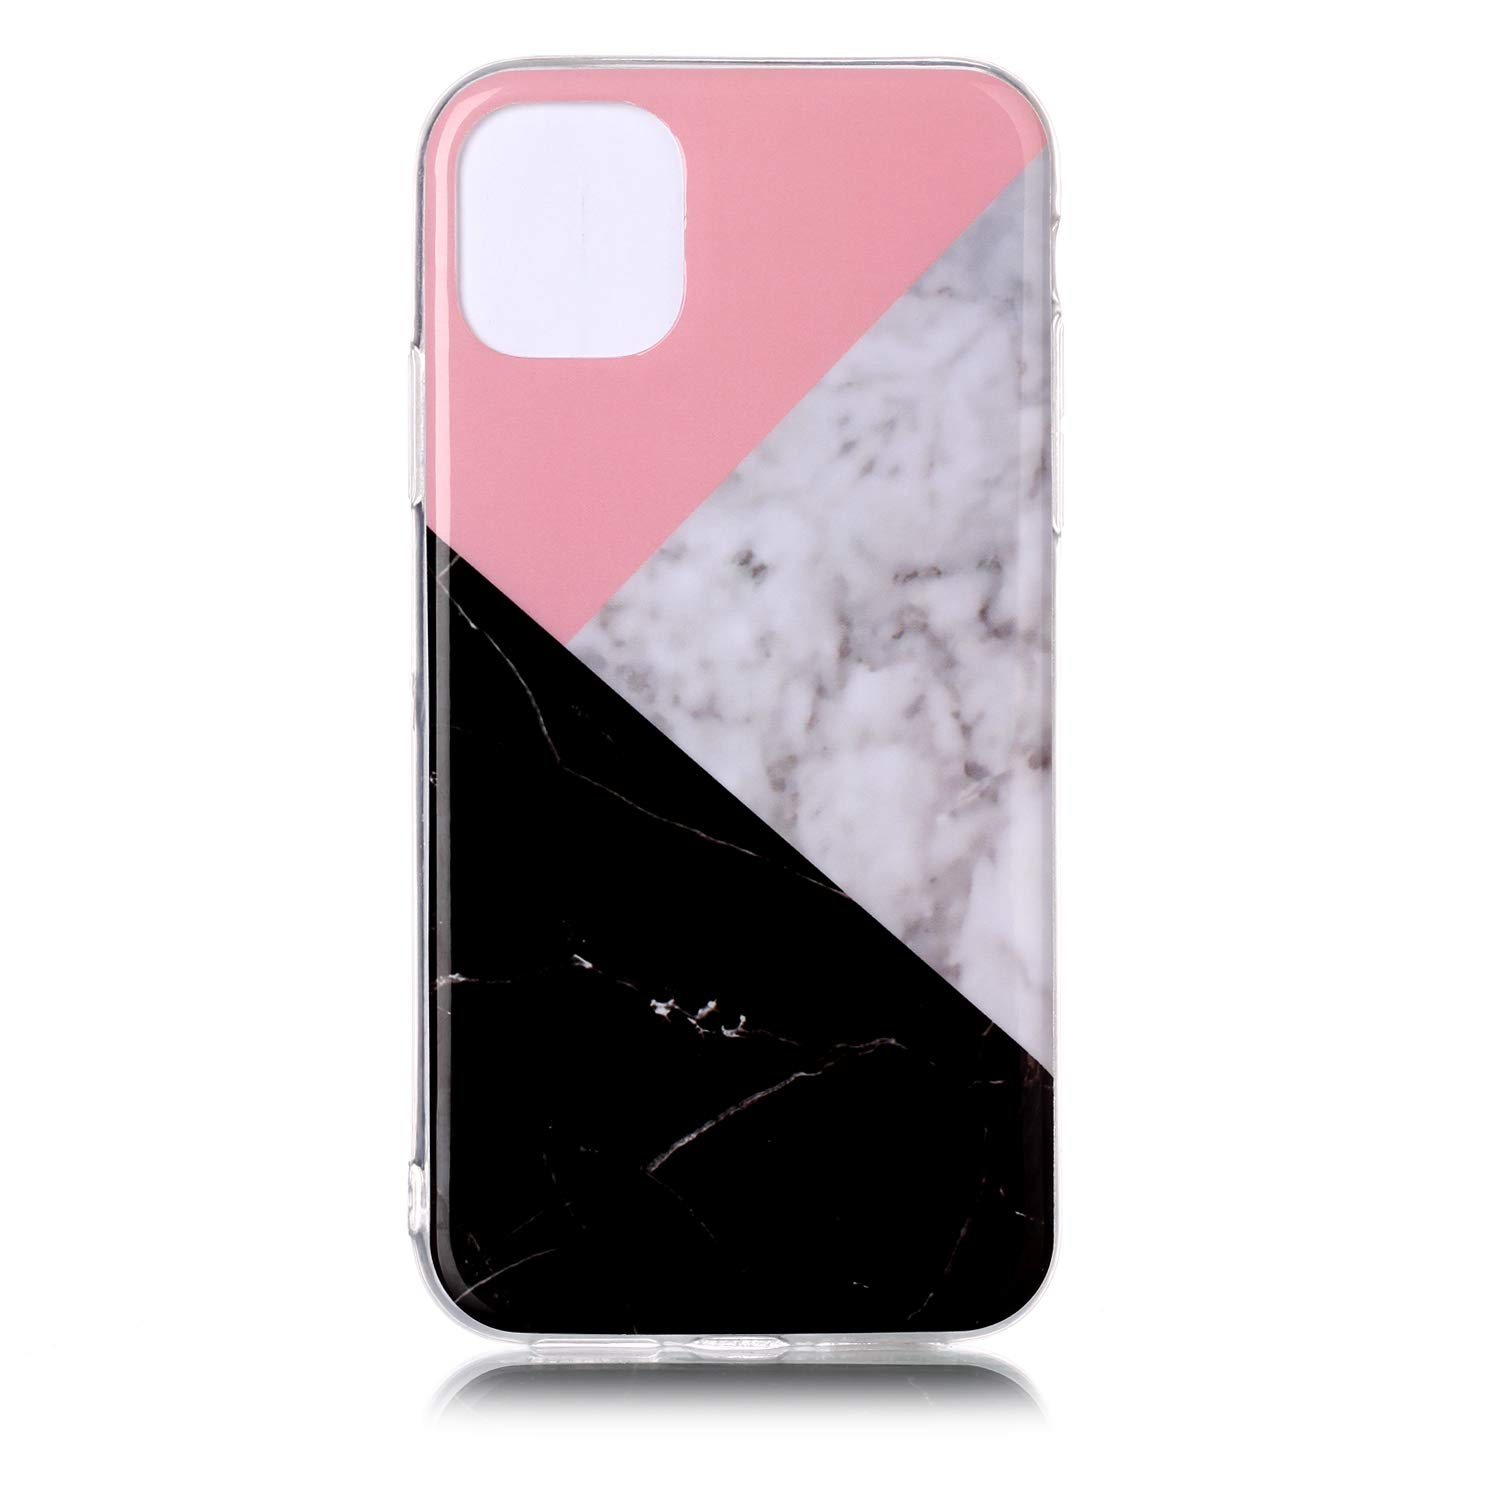 Rose Gold Black Amocase Marble Case with 2 in 1 Stylus for iPhone 11 6.1 2019,Glossy Soft Rubber Silicone TPU Shockproof Anti-Scratch Flexible Bumper Case